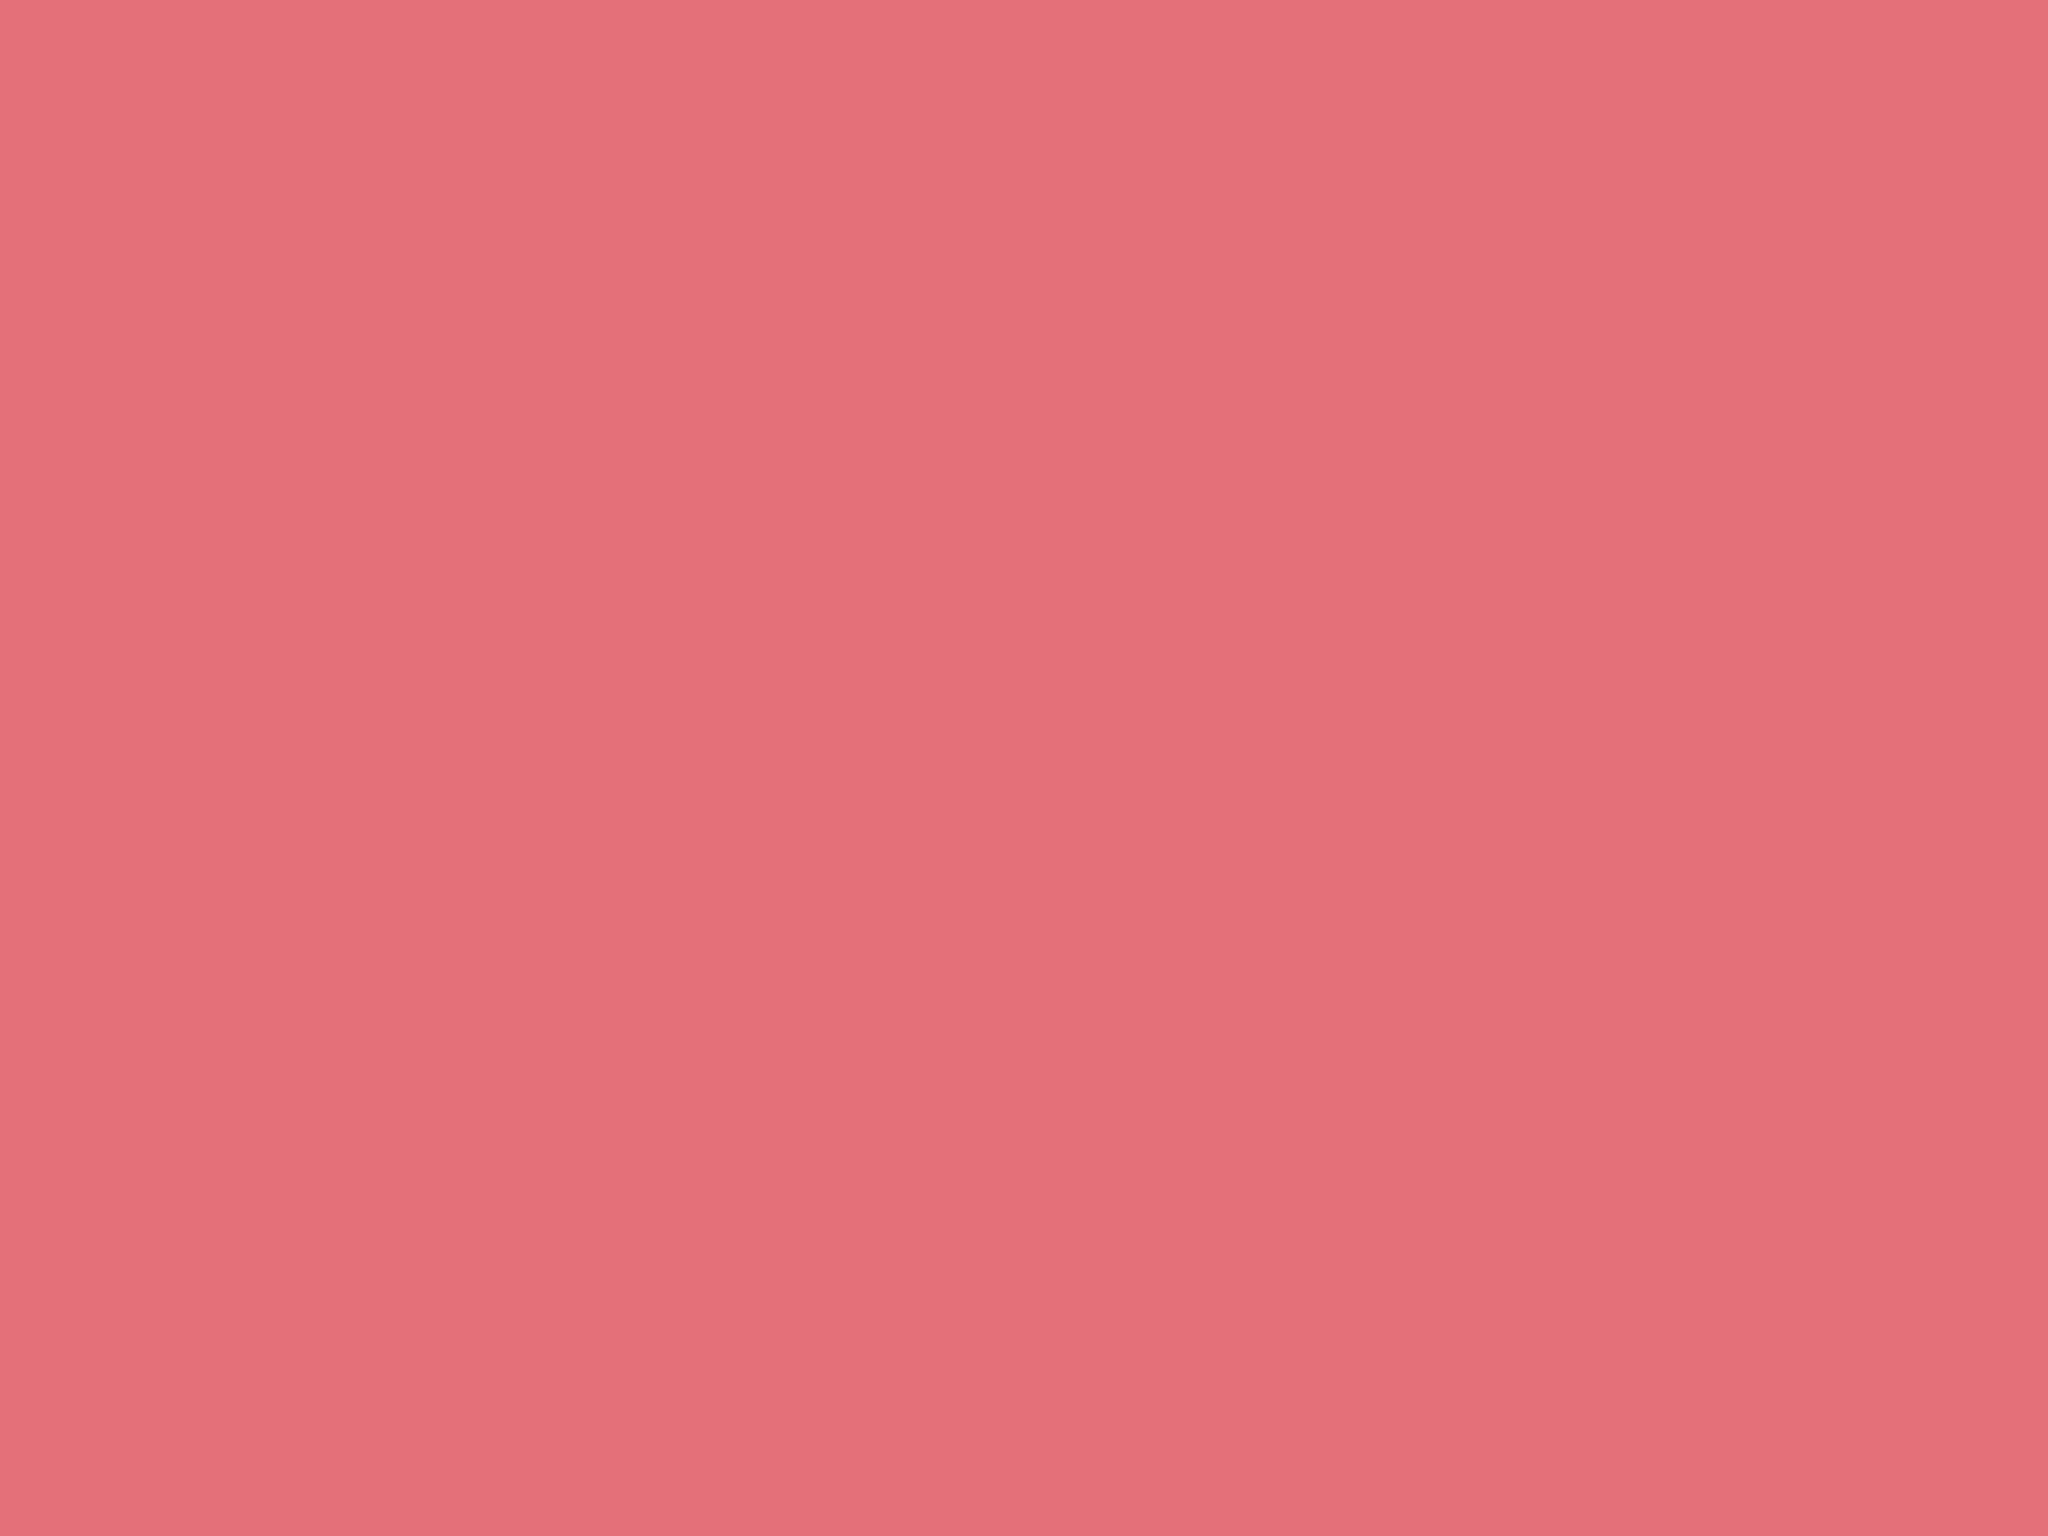 2048x1536 Tango Pink Solid Color Background